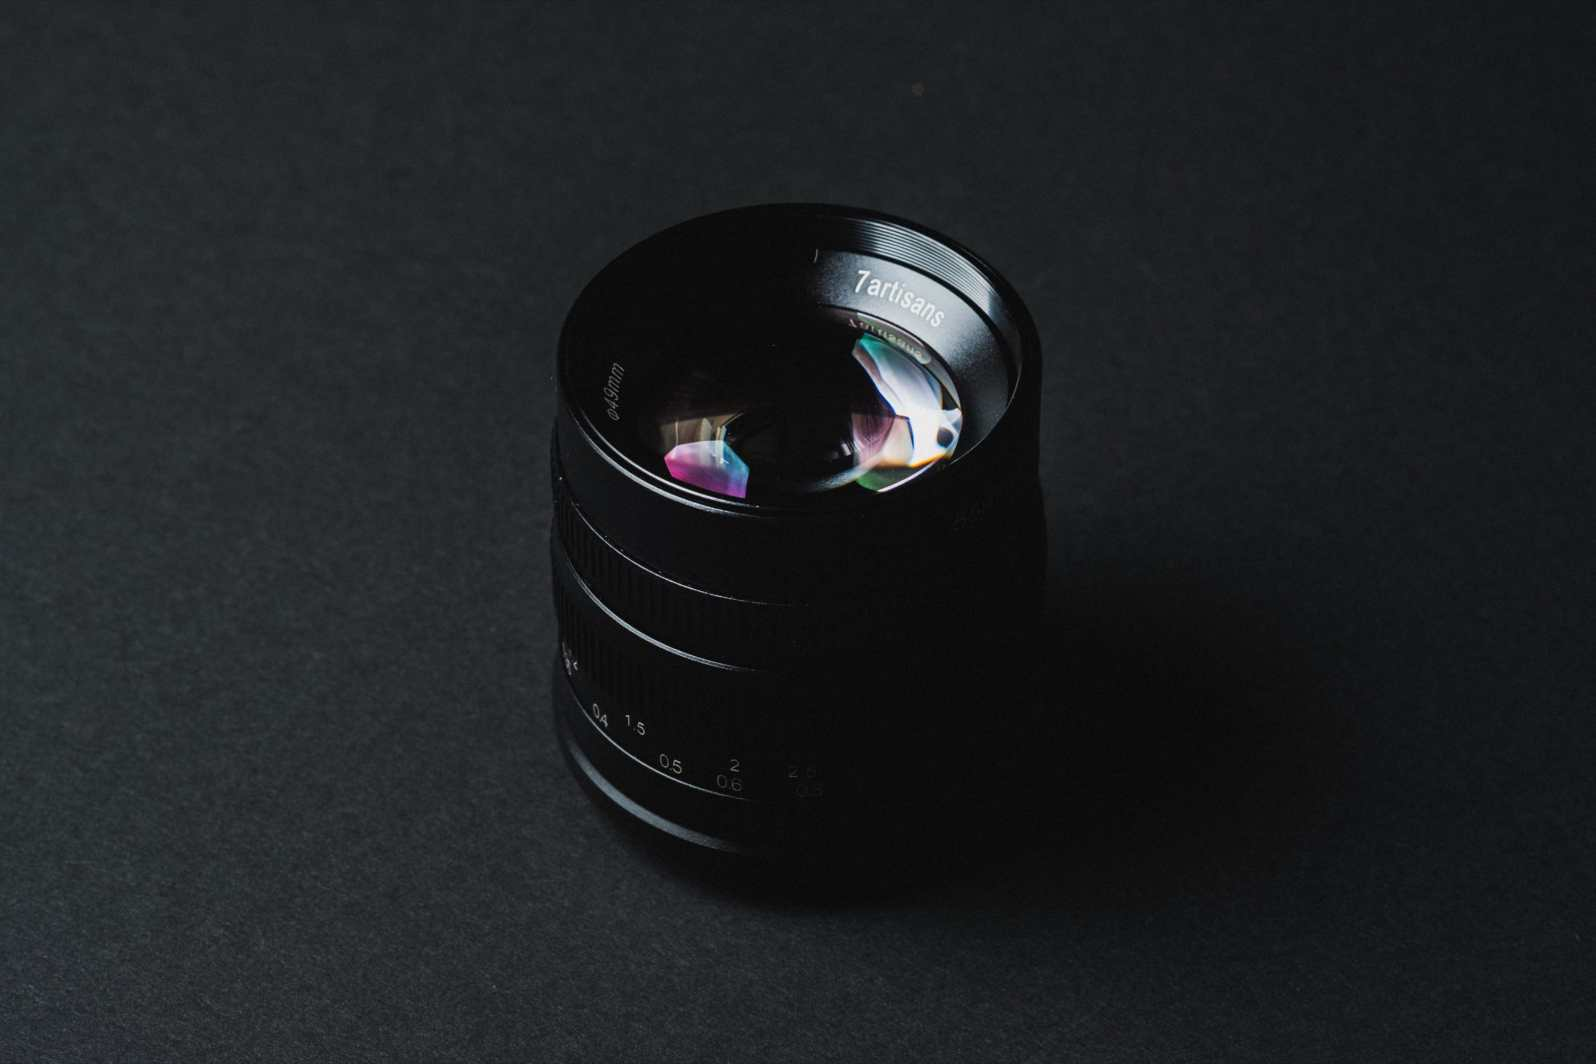 7Artisans 55mm f1.4 Review